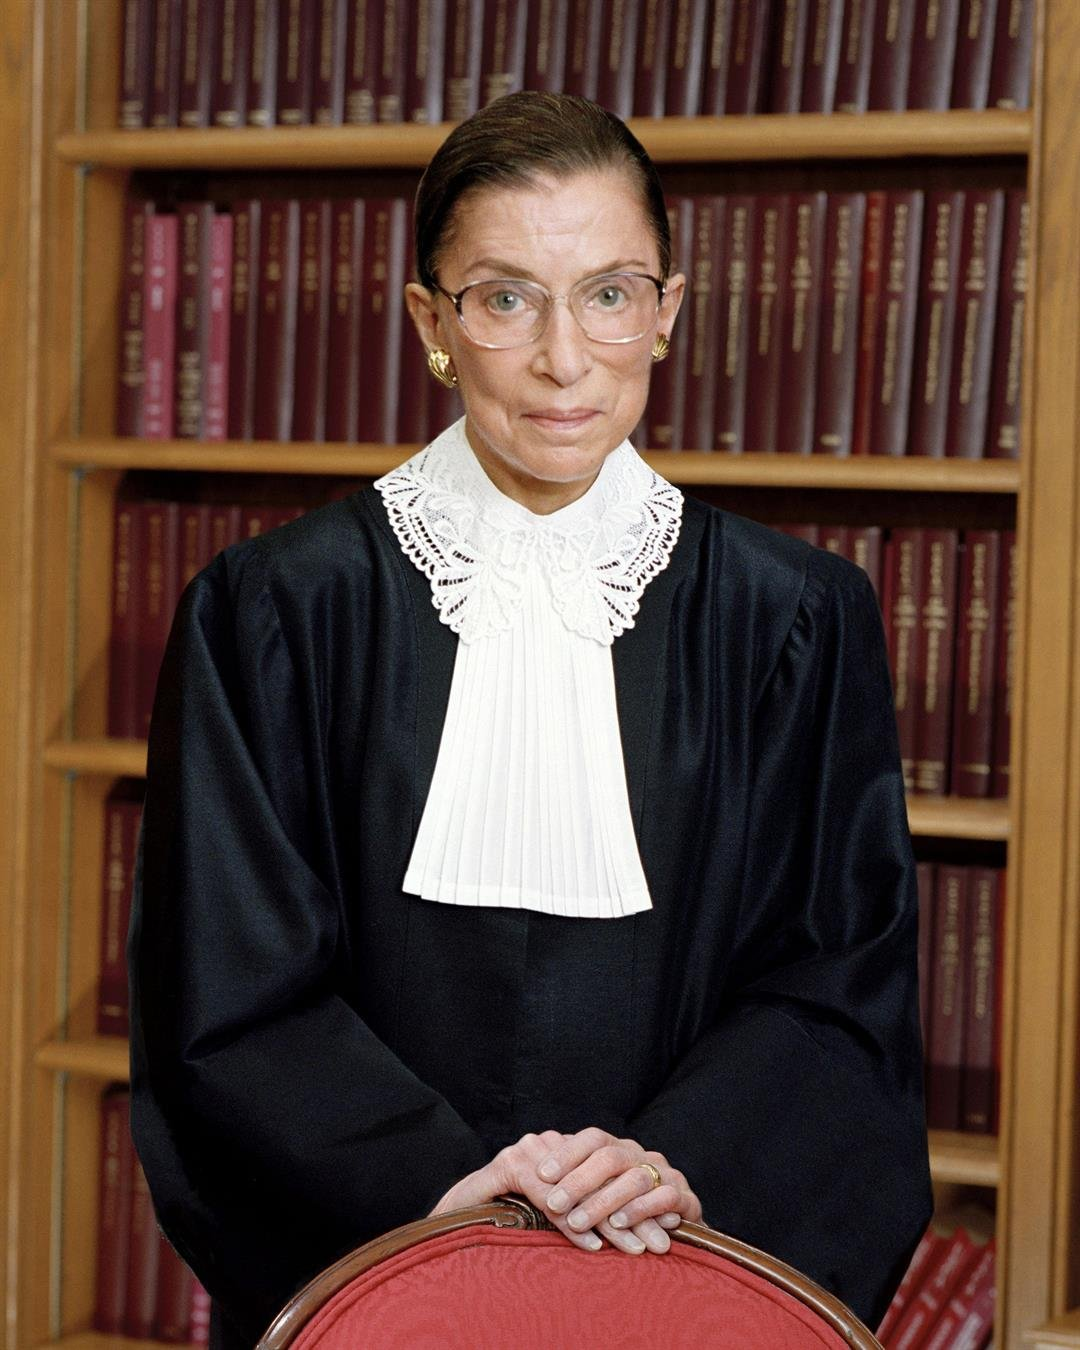 Justice Ruth Bader Ginsburg -- the 85-year-old liberal legal icon -- has spent 25 years on the Supreme Court and says she plans on staying put for at least five more. But while most know of her work, far fewer know about her backstory.